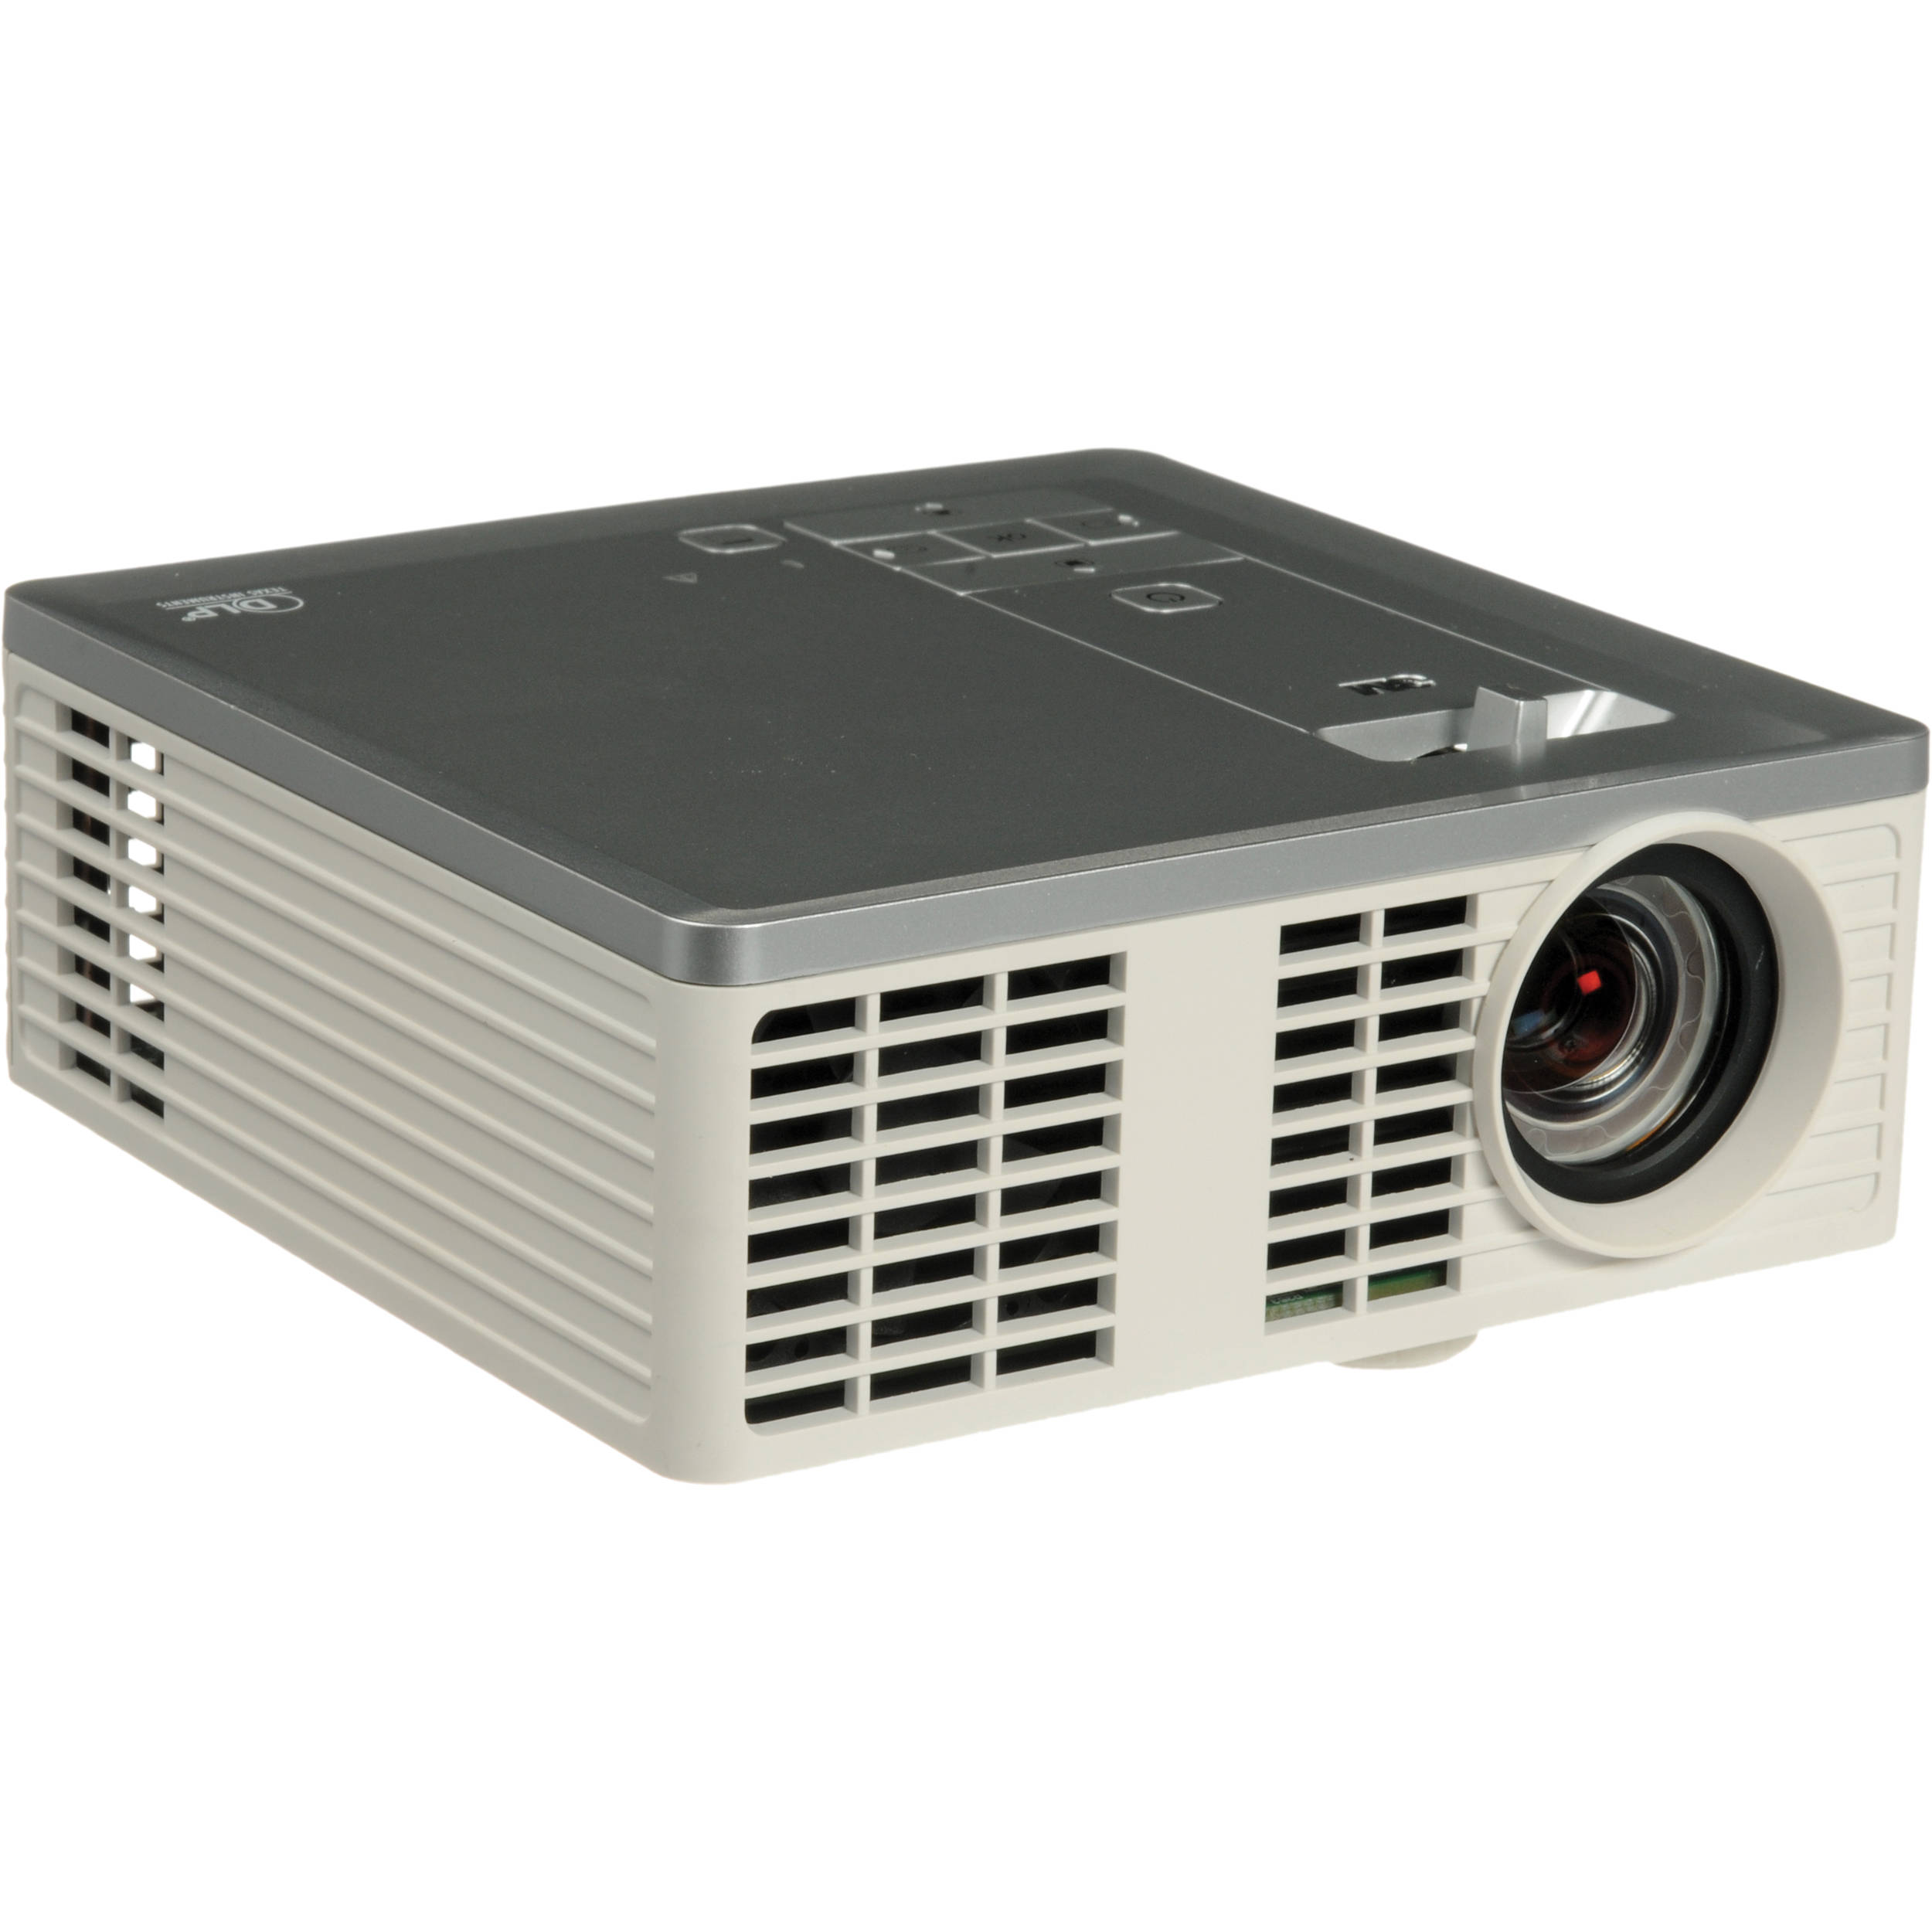 3m mobile projector mp410 78 9236 7731 0 b h photo video for How to make mobile projector